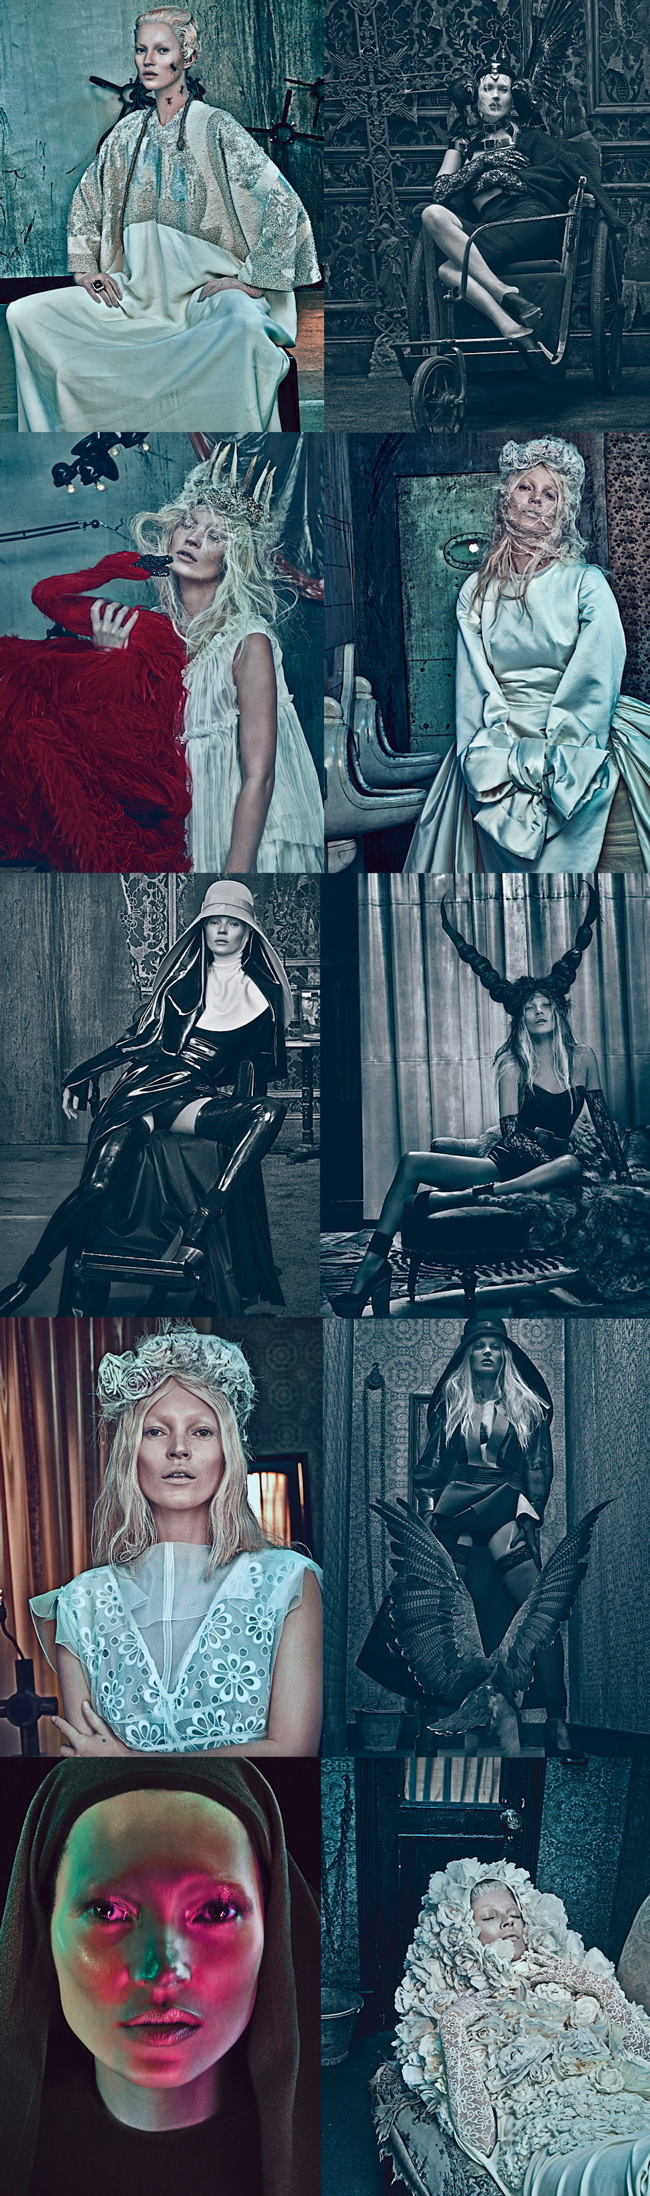 Kate Mos for W Magazine Photo by Steven Klein 1 Good Kate / Bad Kate by Steven Klein